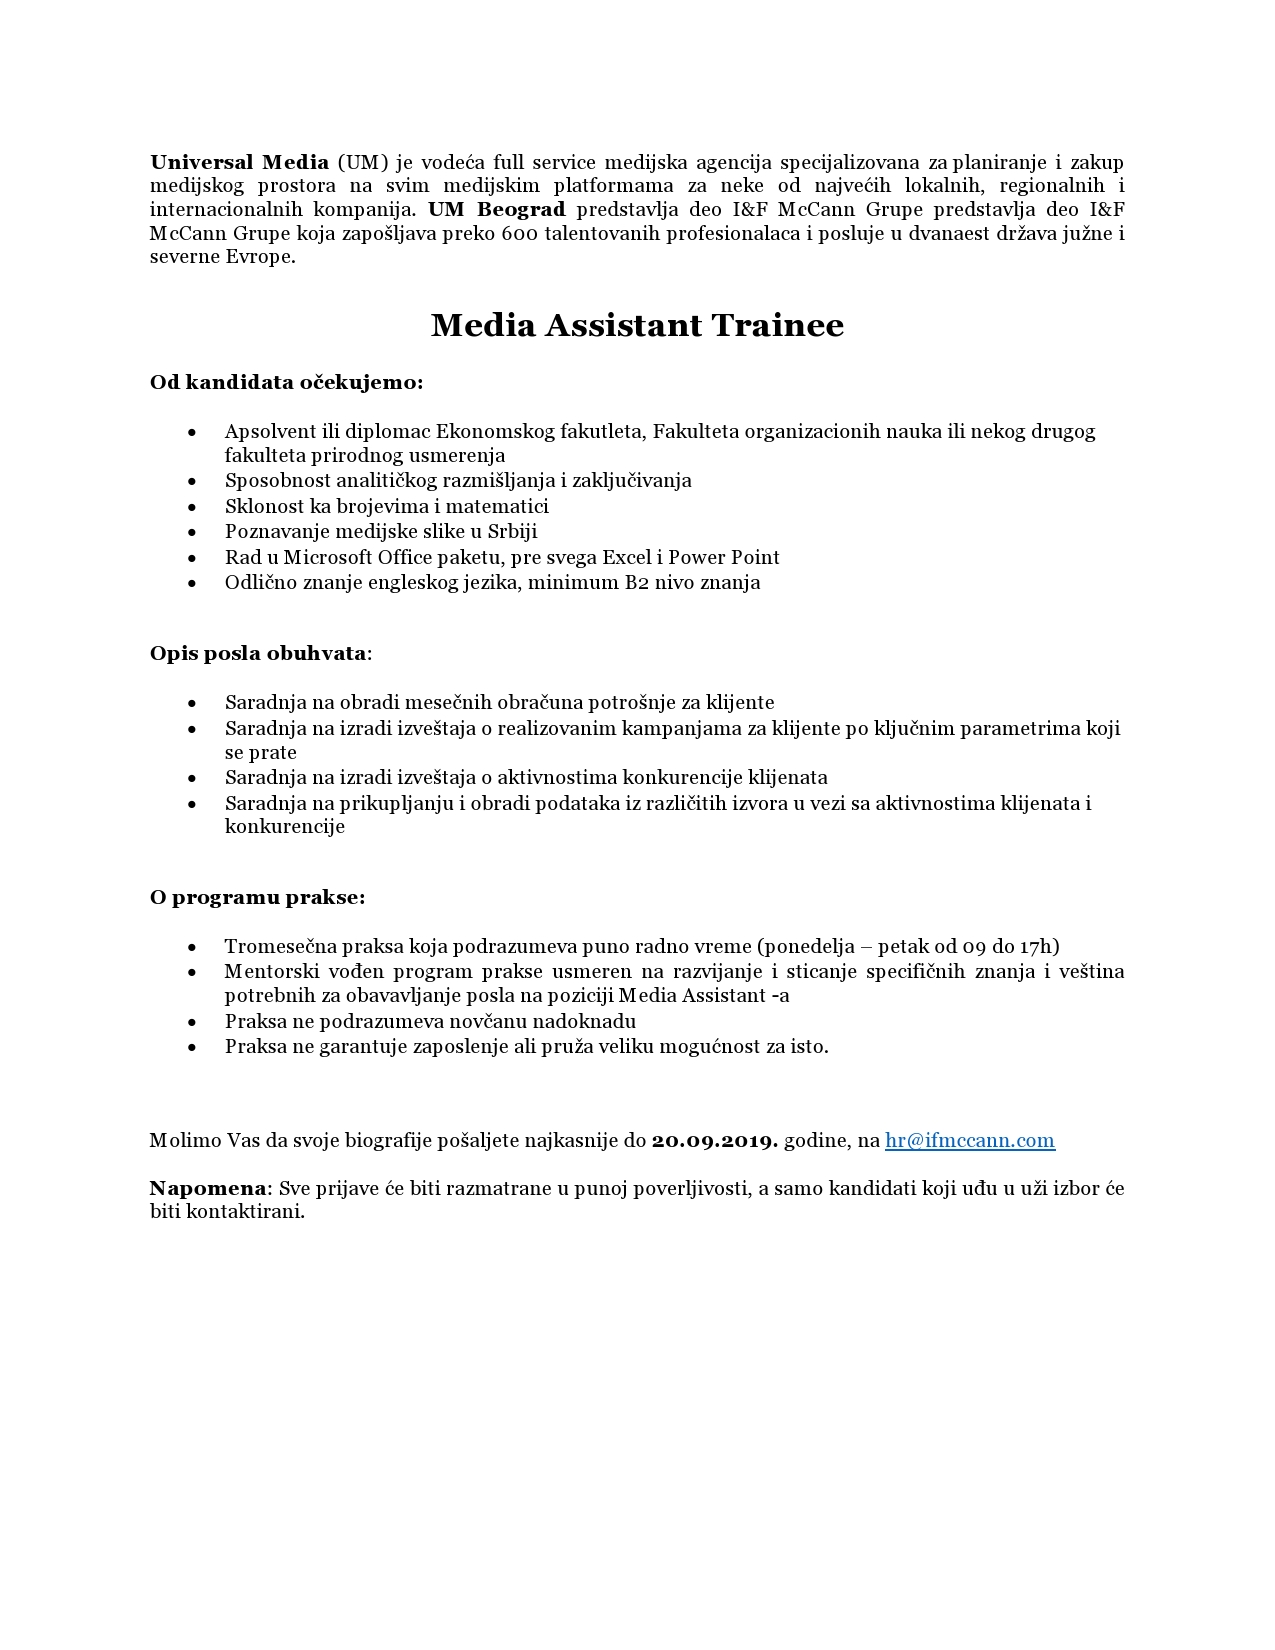 UM_oglas za Media Assistant Trainee-page0001